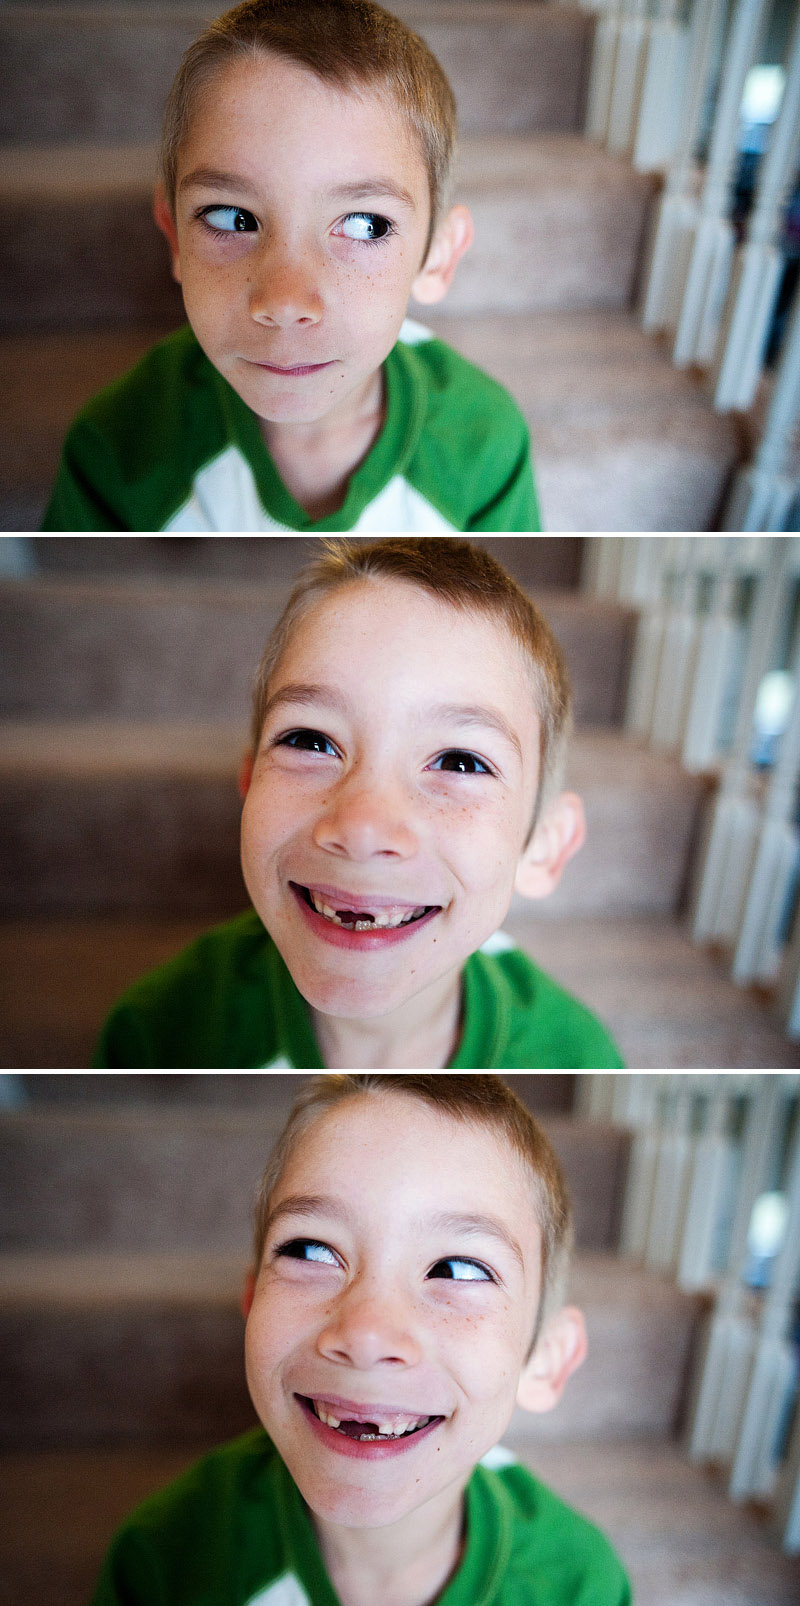 Portraits of a boy missing his two front teeth.